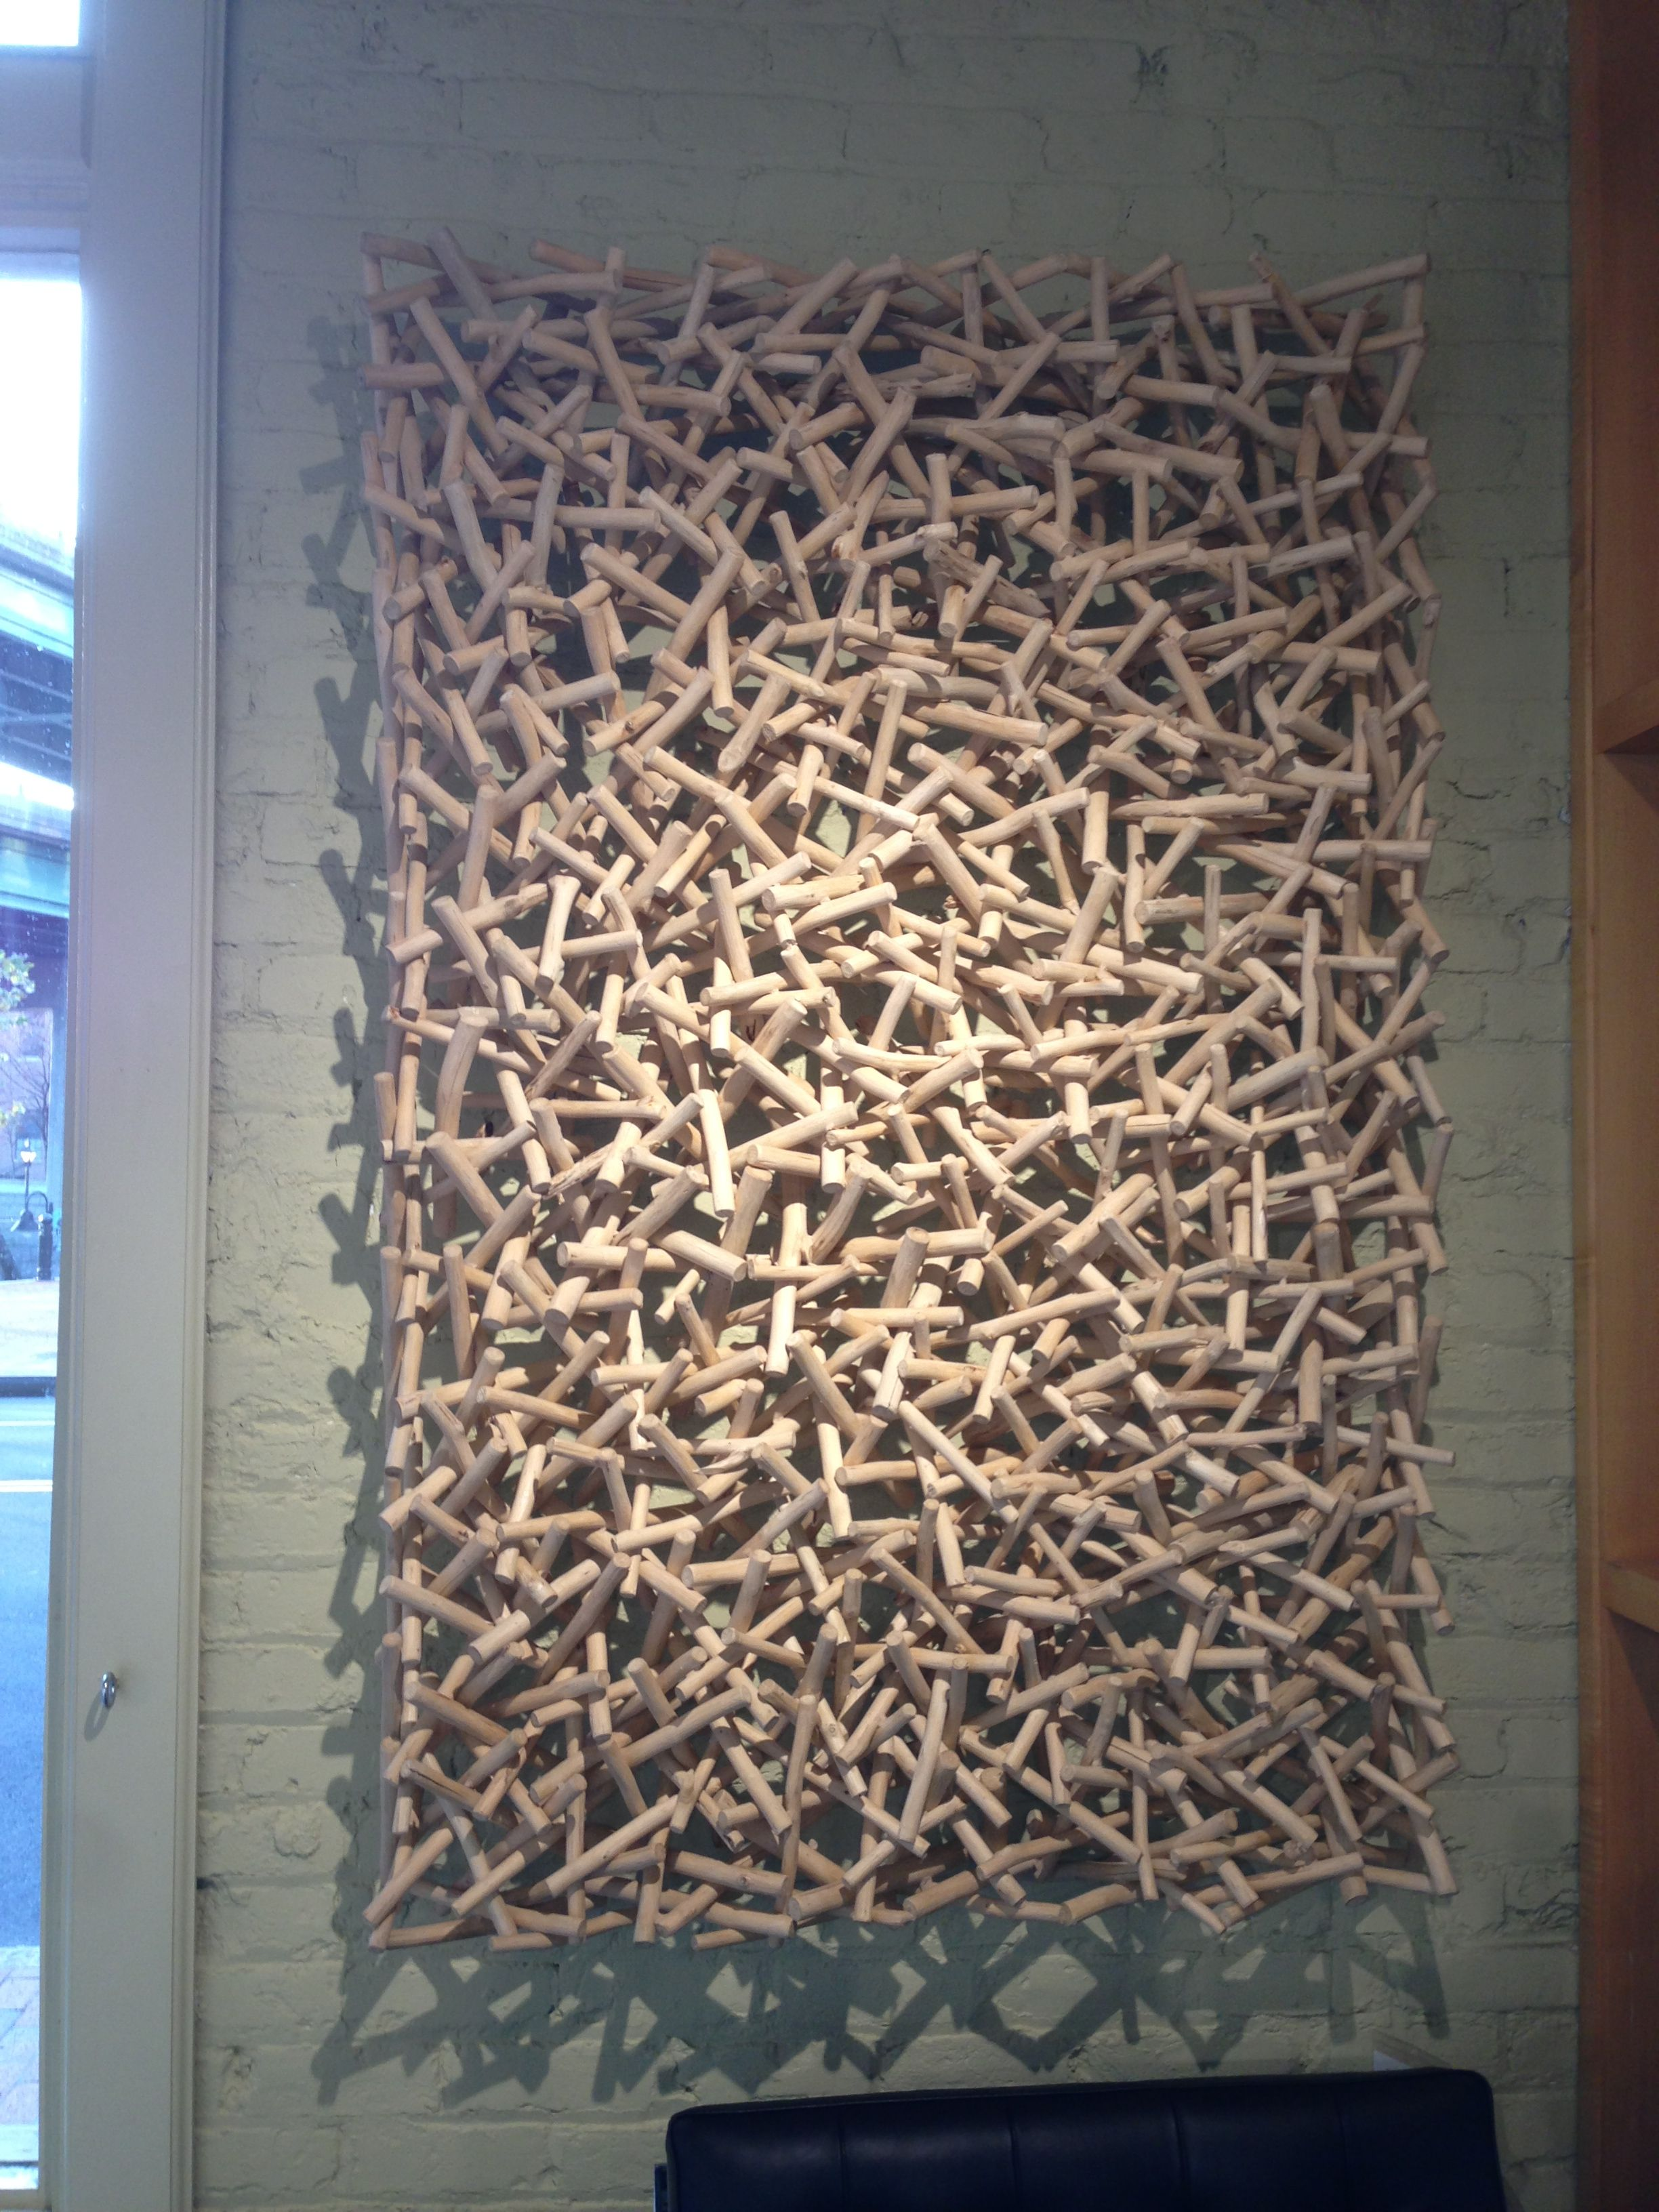 Wall Art Sculpture Made From Debarked Sticks Which Are Tacked Together This Piece Is Has An Interesting Stick Wall Art Wall Sculpture Art Wood Wall Sculpture